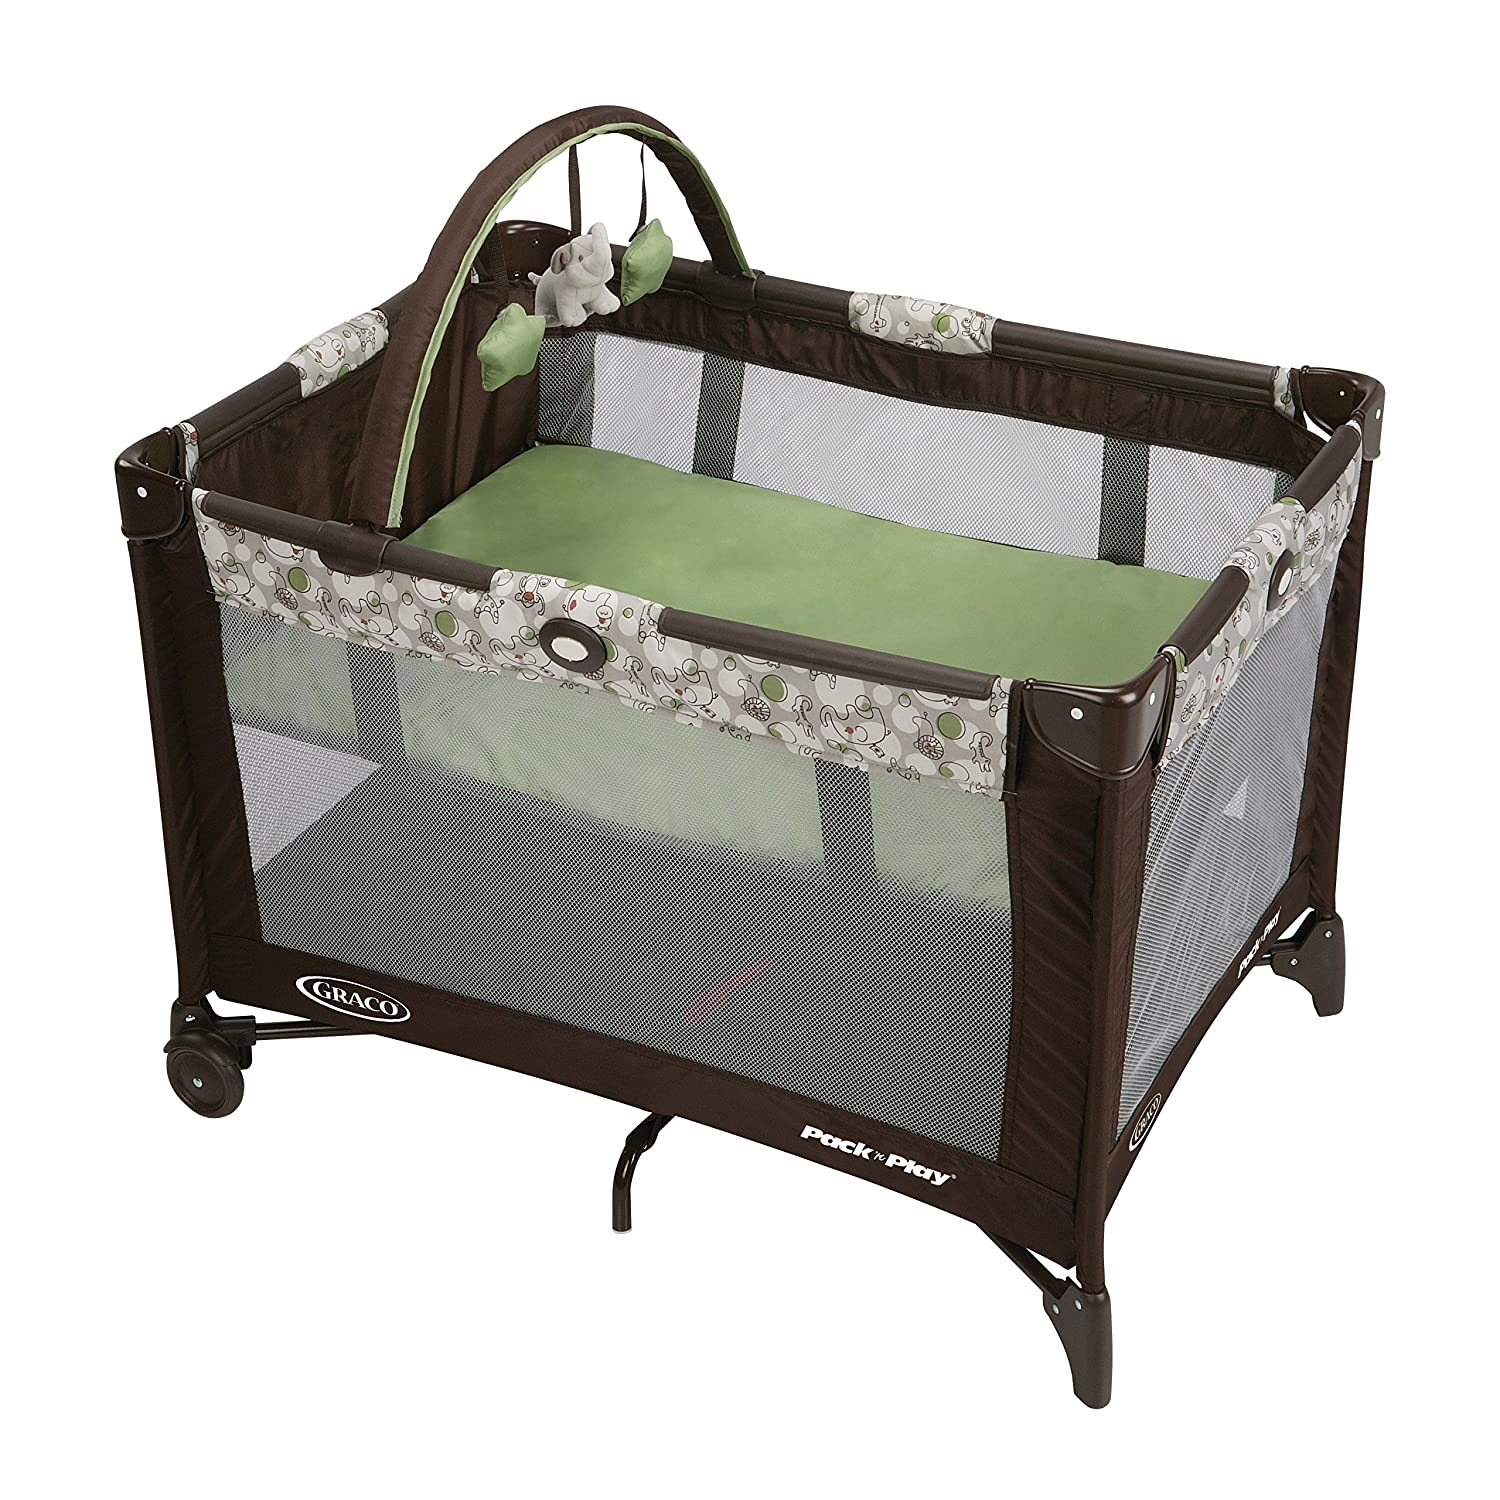 Graco Pack 'n Play On The Go Playard, Go Green 1812957